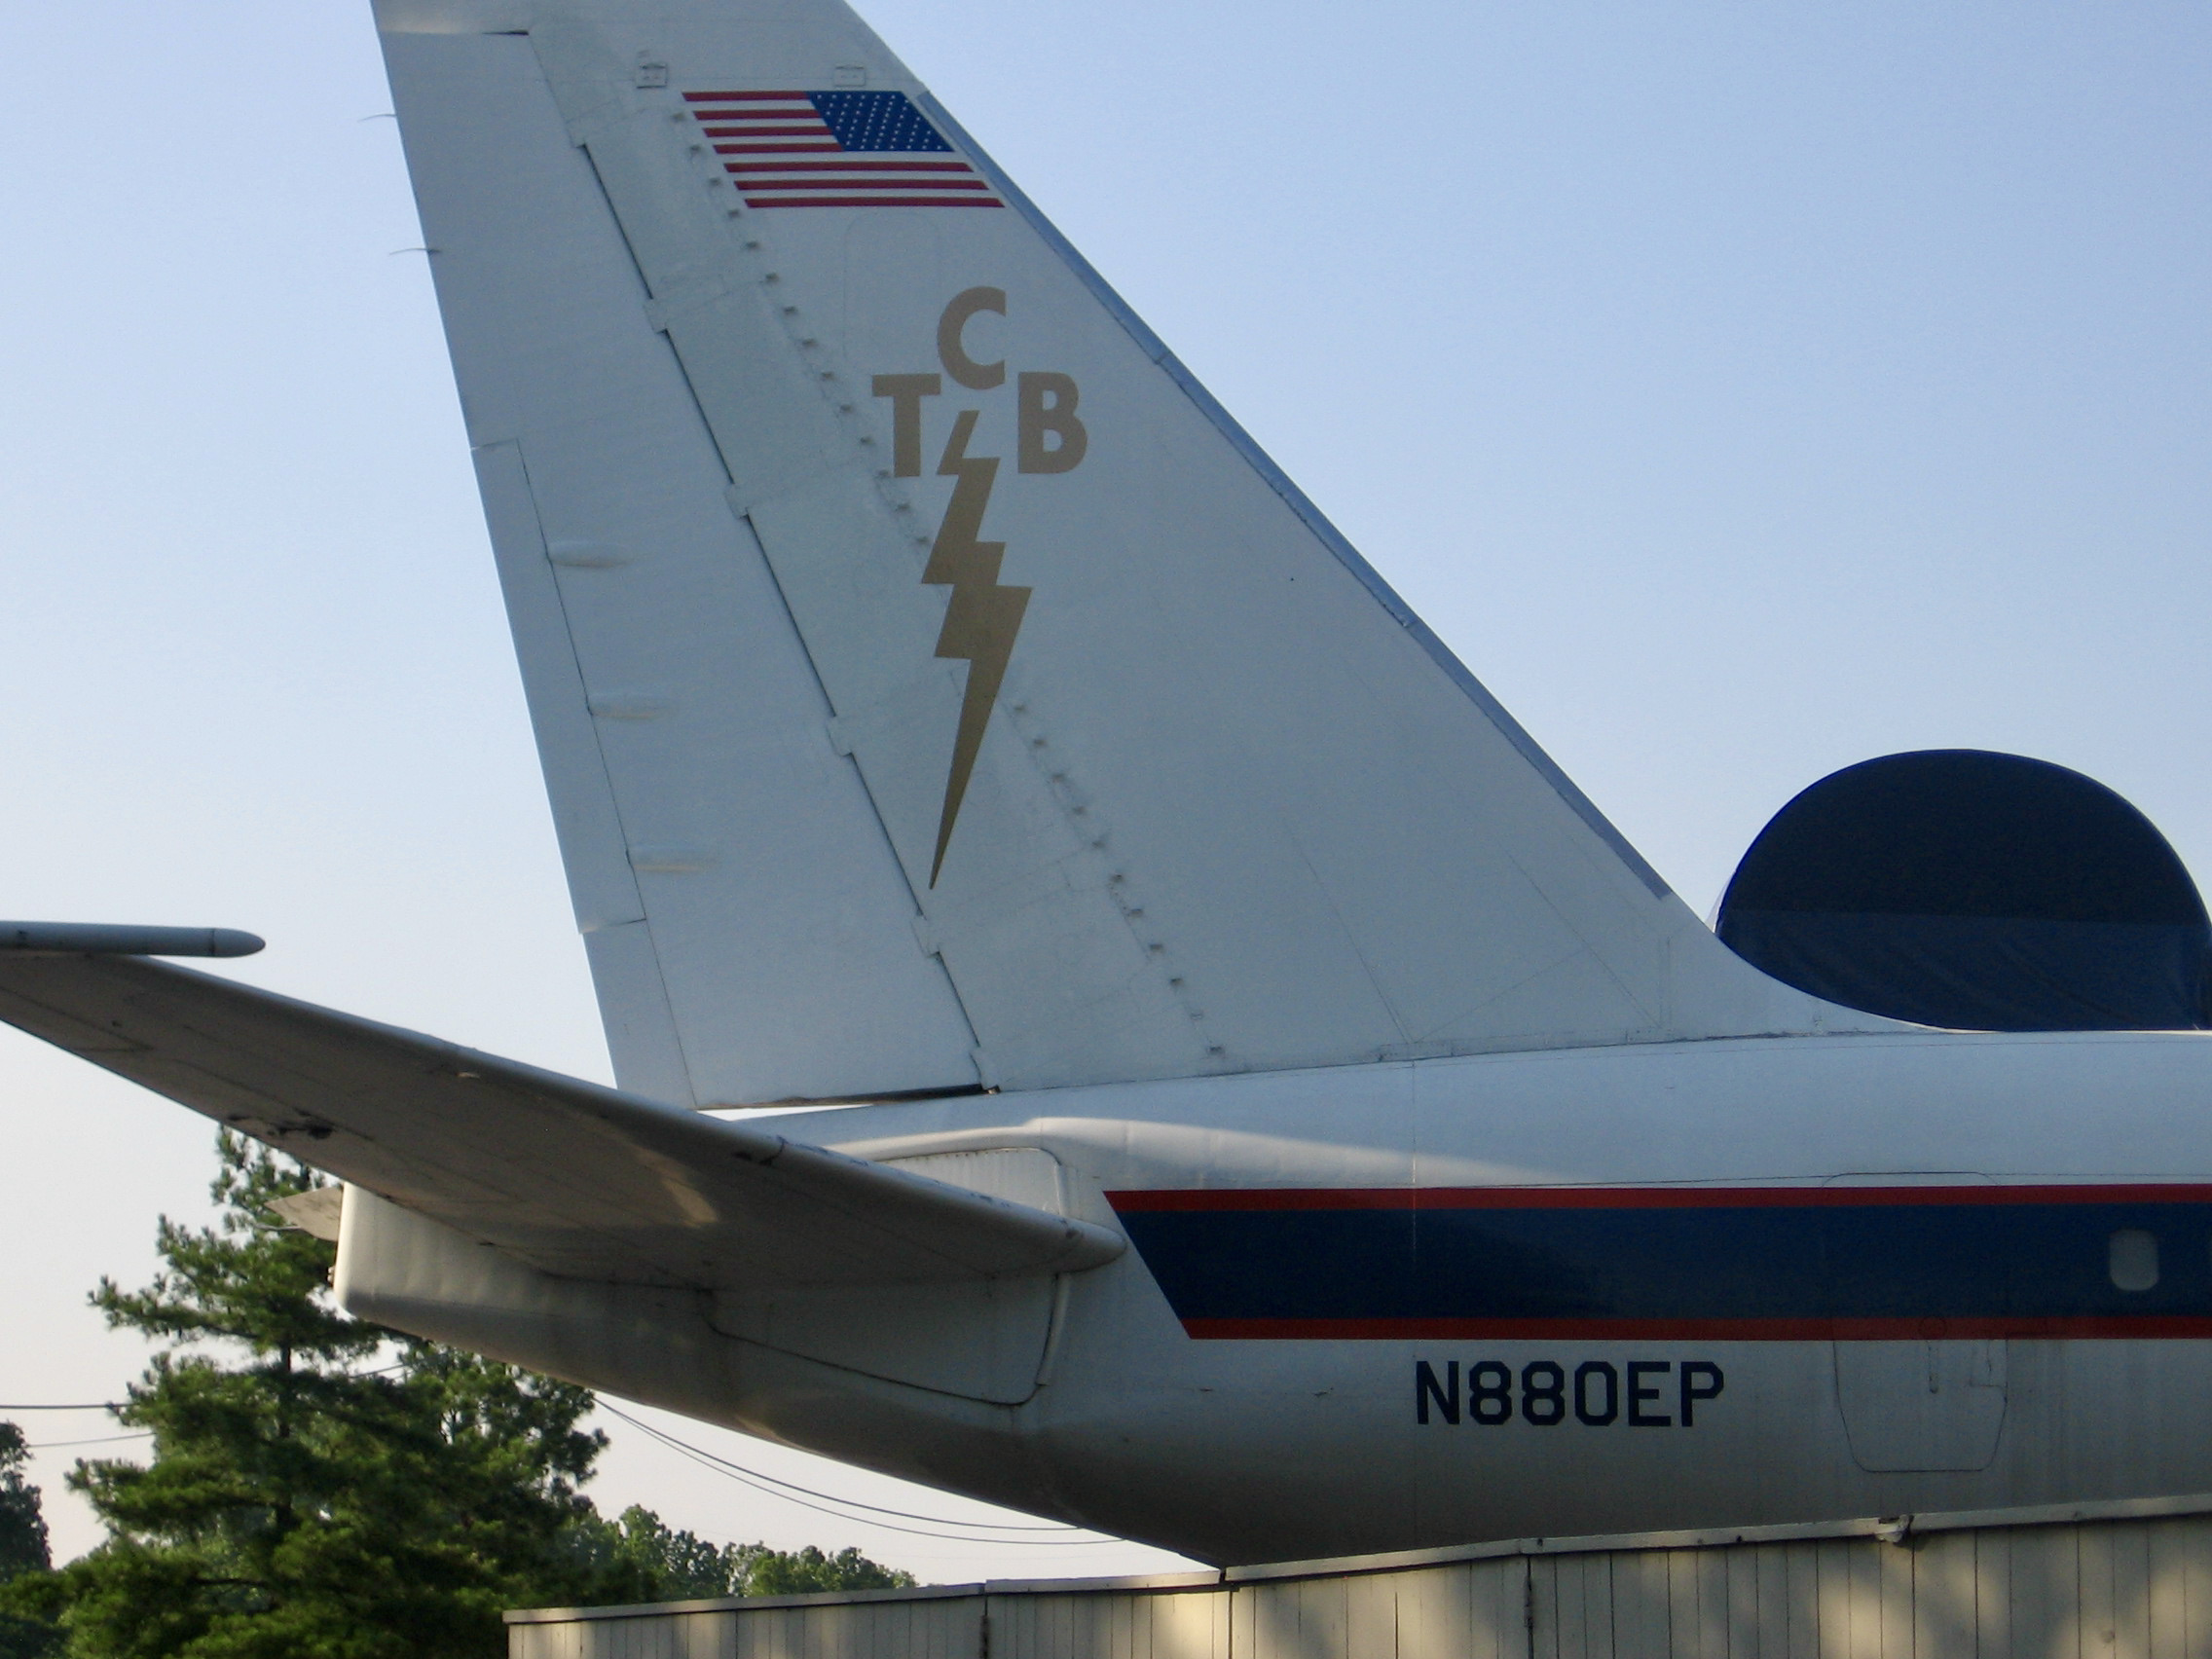 Tail of Elvis's jet, showing the TCB logo